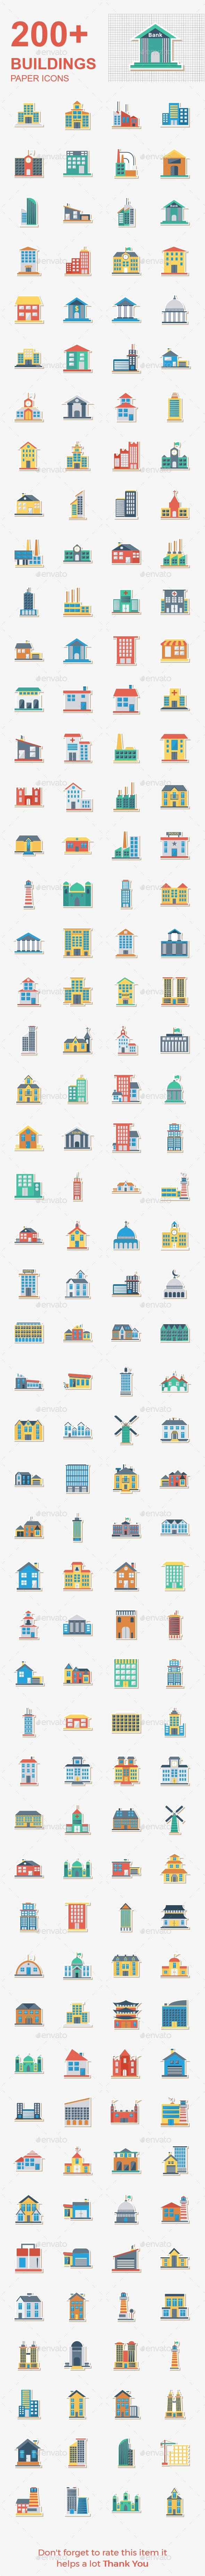 200 Building Flat Paper - Buildings Objects